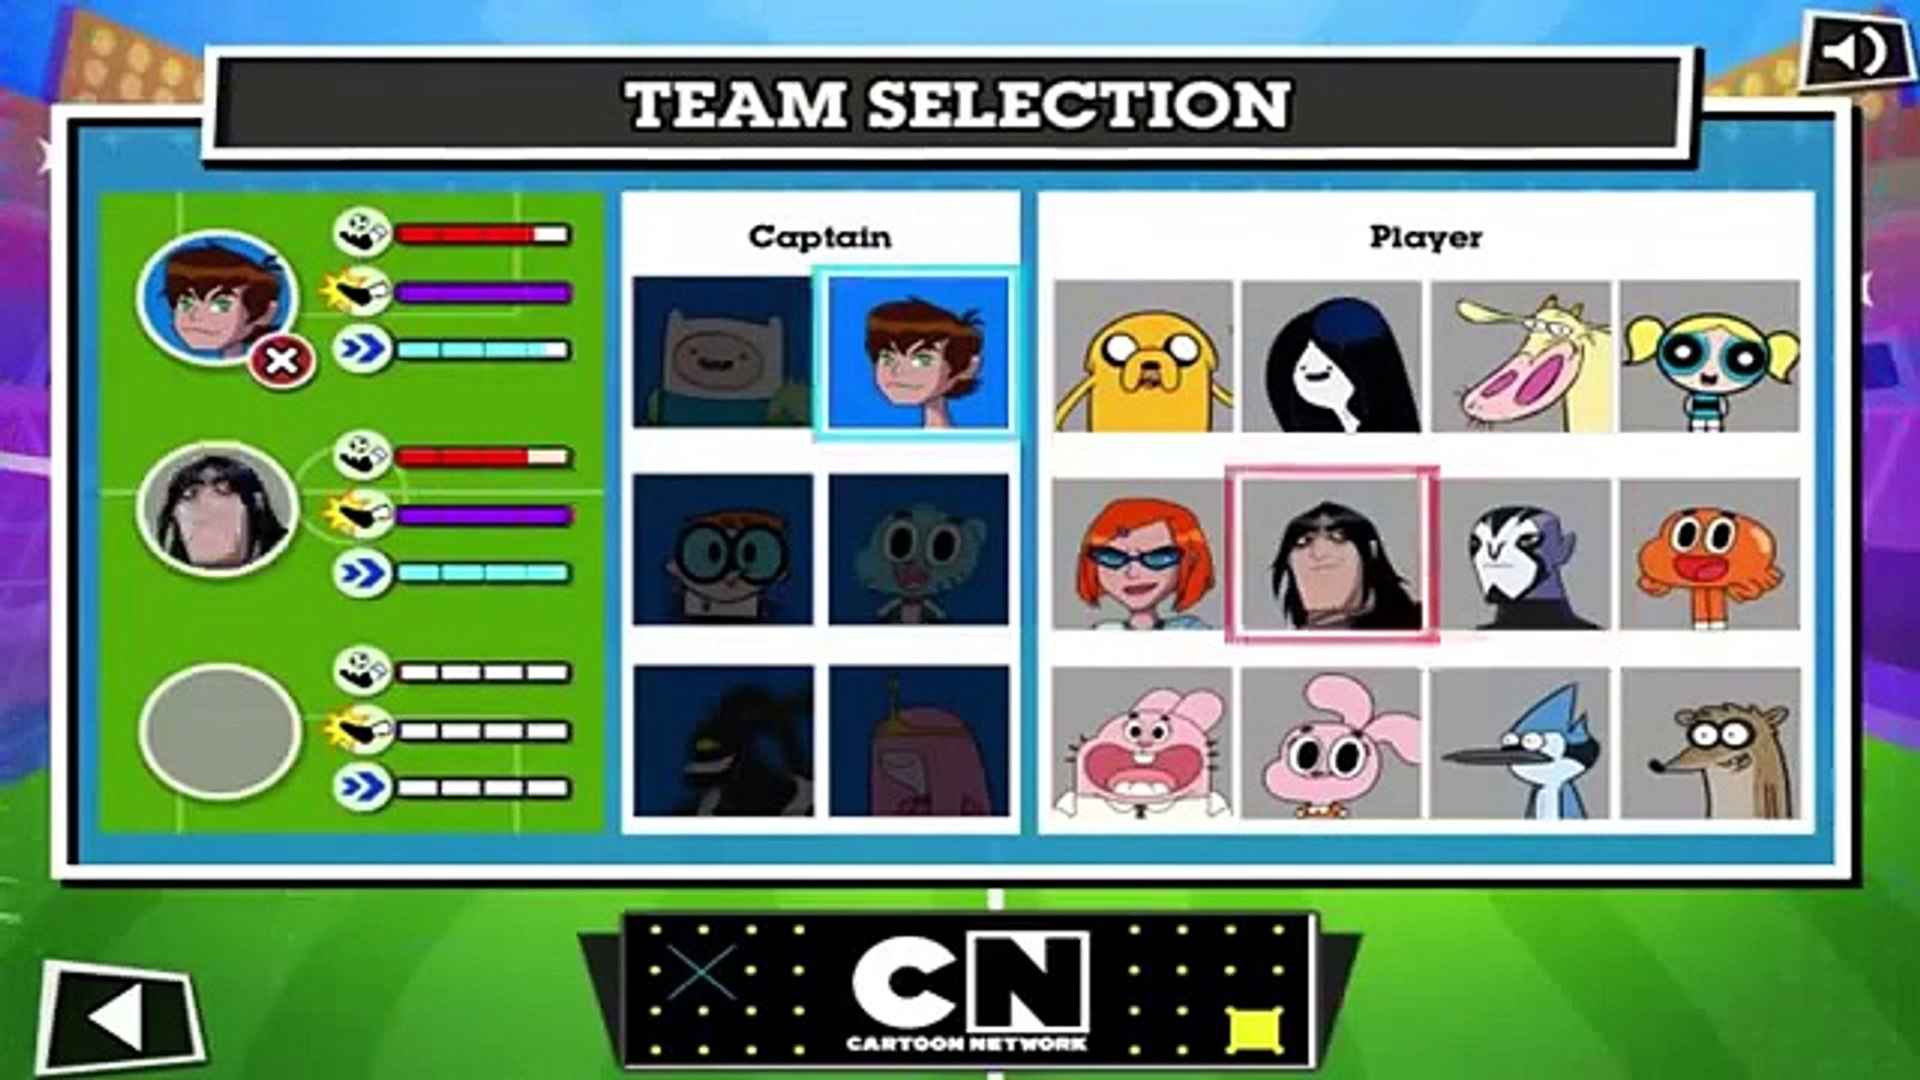 TOON CUP 2013 CARTOON NETWORK GAMES